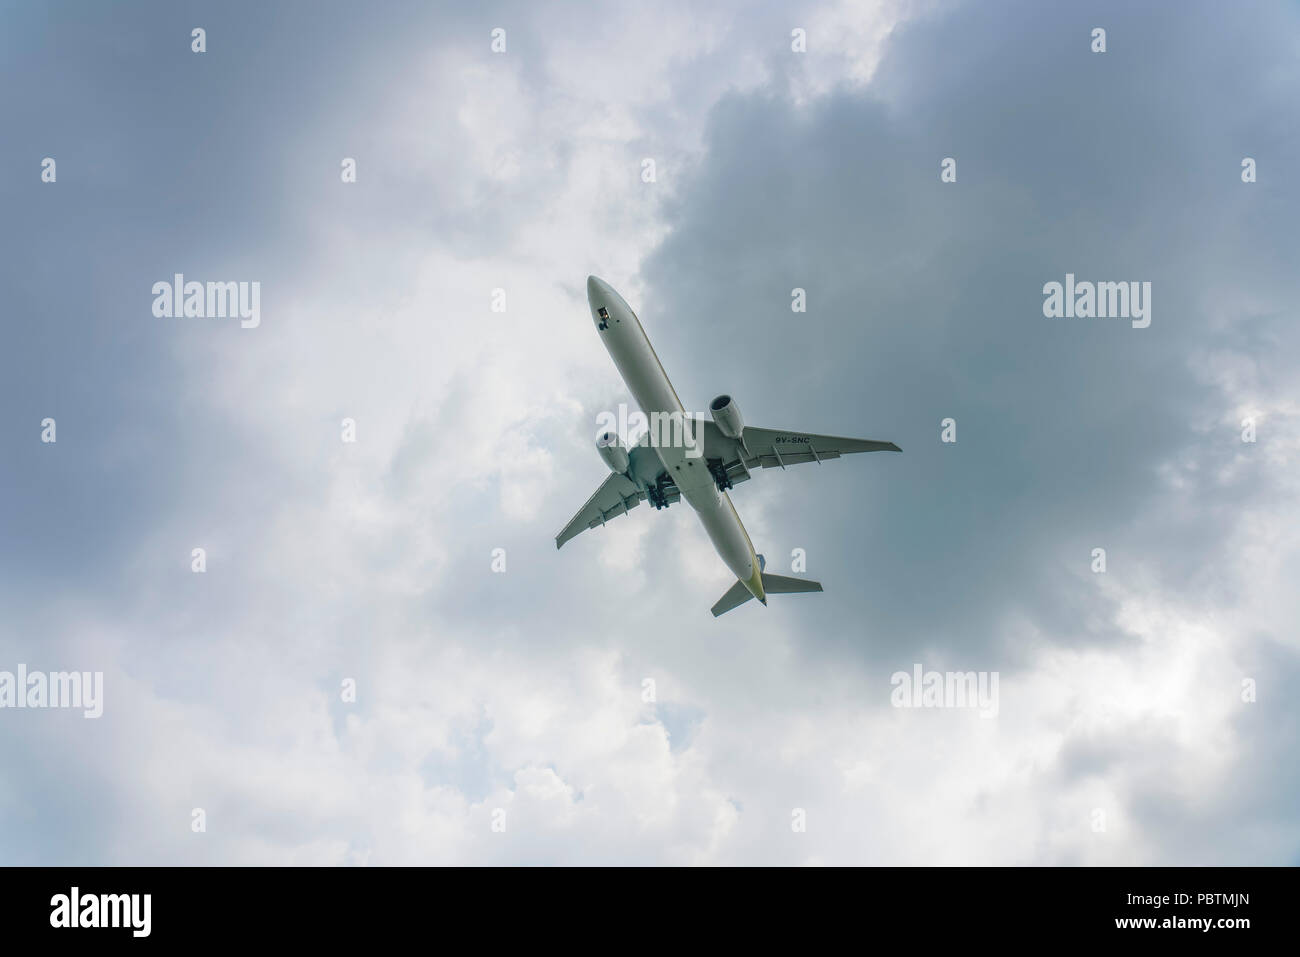 Singapore - June 03 2018: Airliner on final approach into Changi Airport Stock Photo